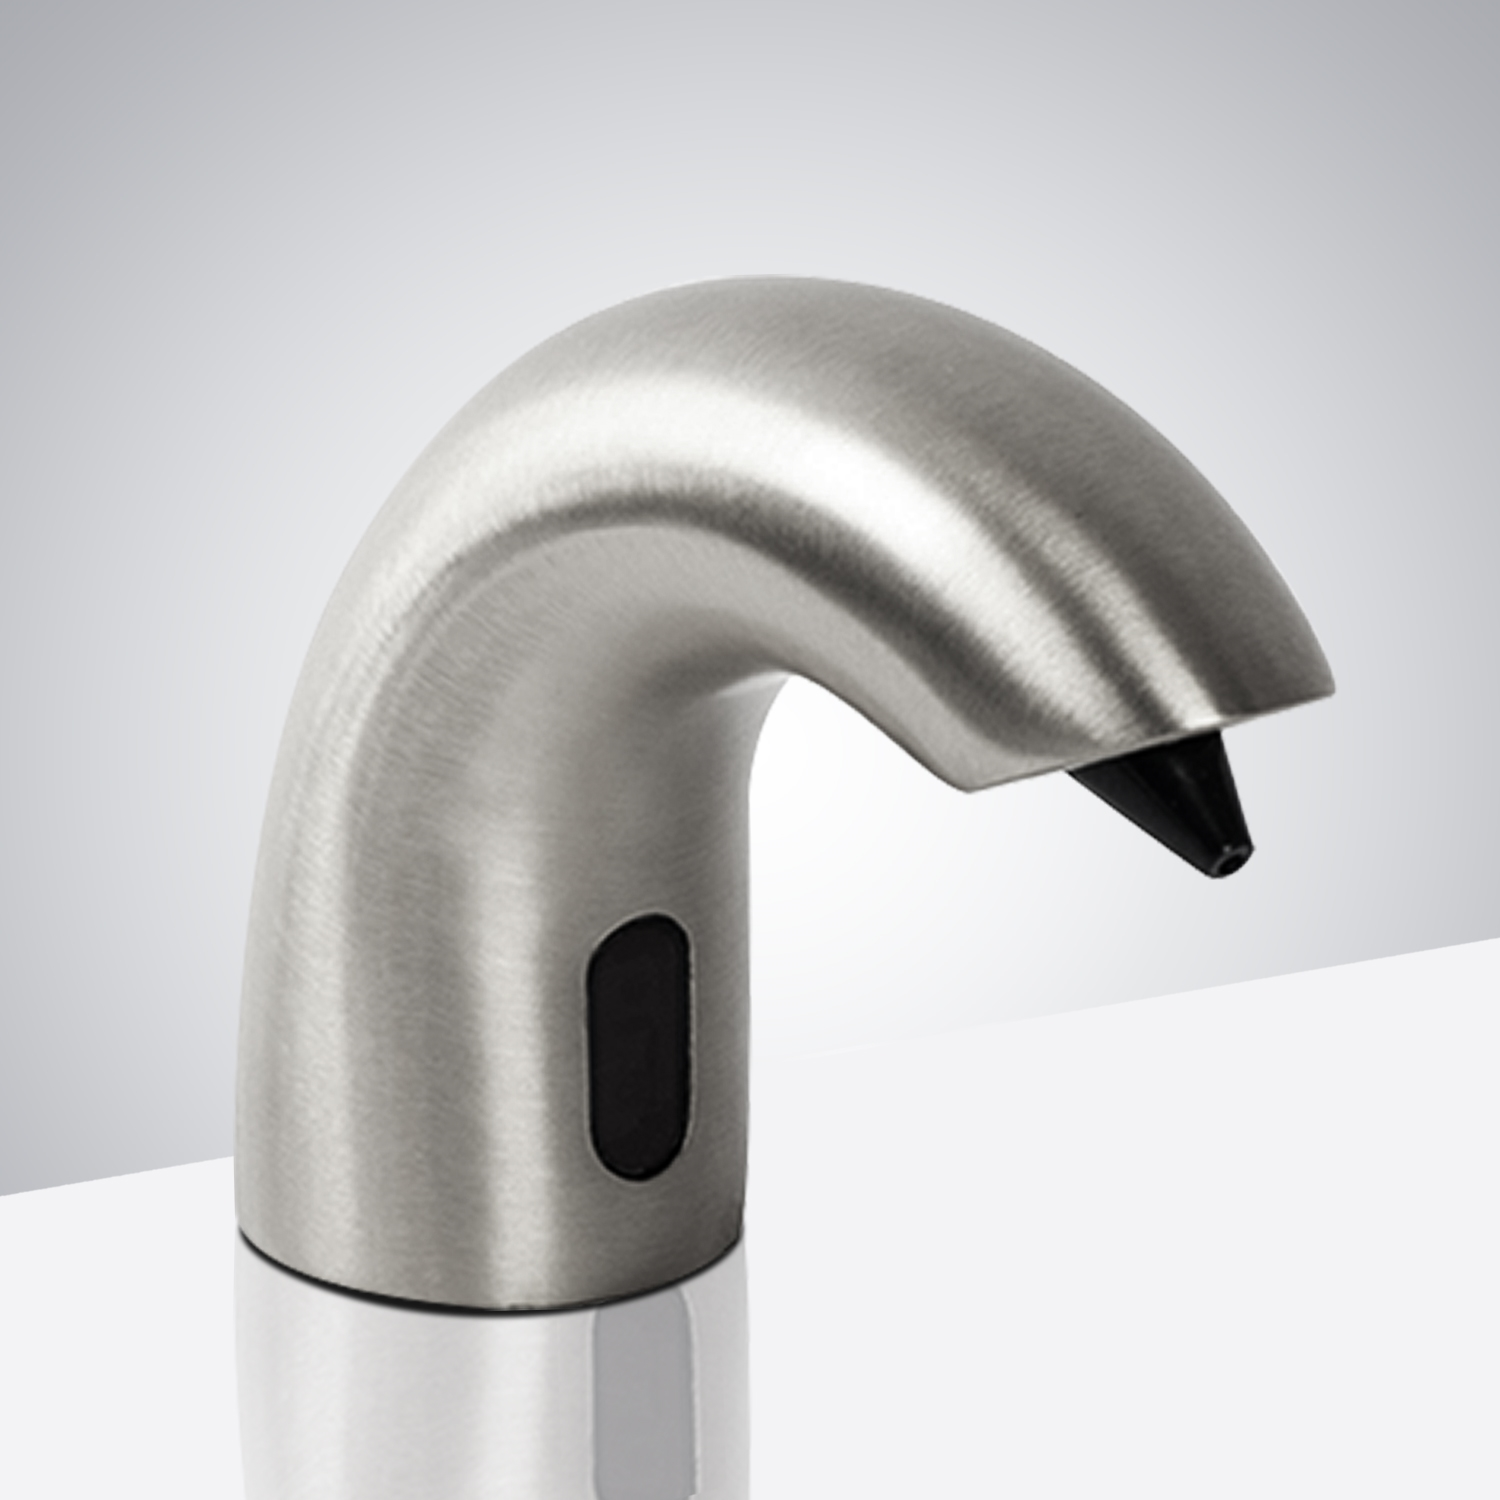 Fontana Peru Commercial Electronic Sensor Soap Dispenser In Satin Nickel Finish